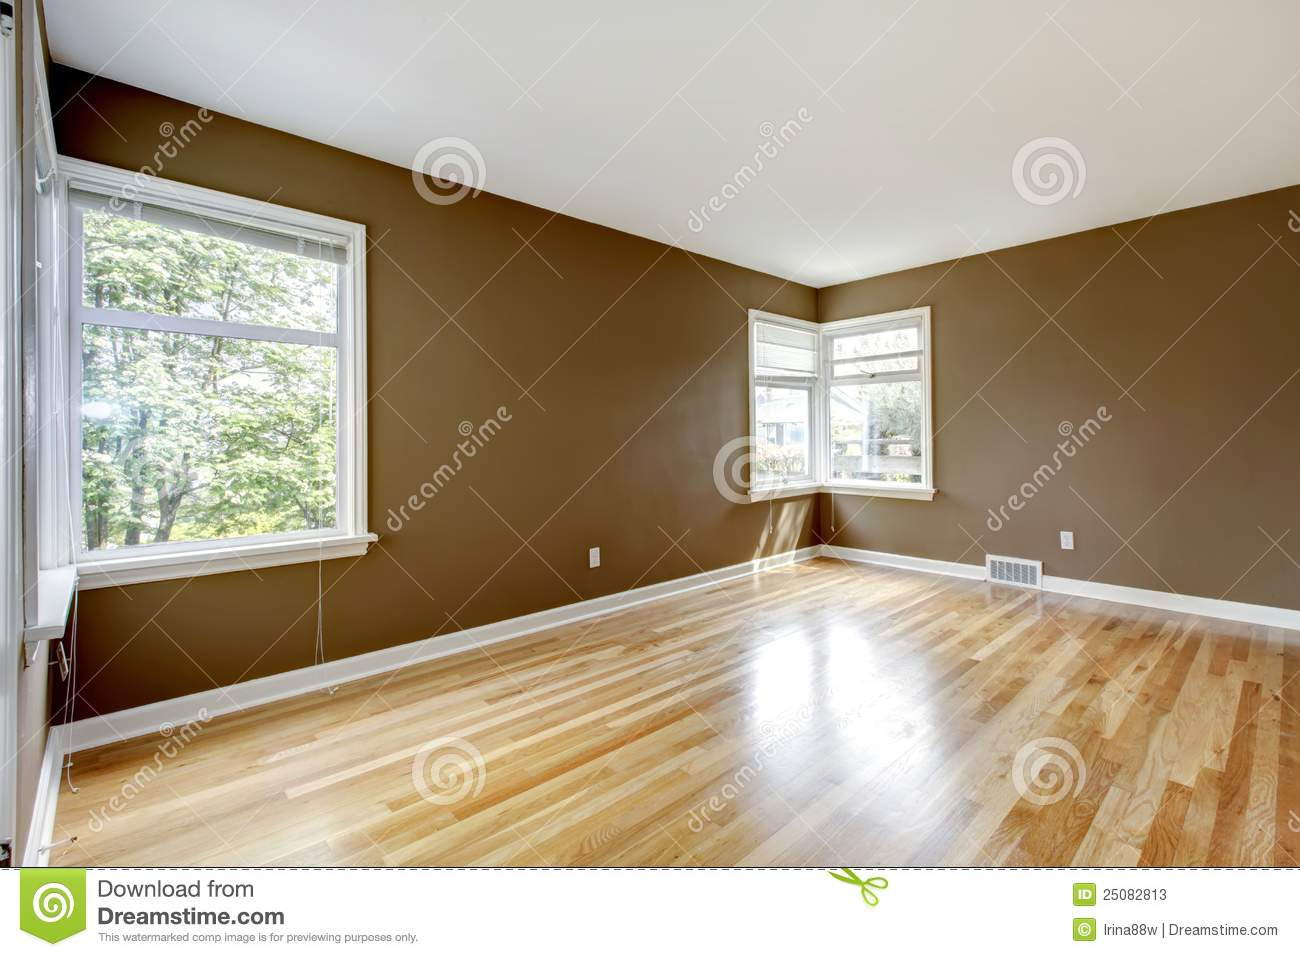 Empty Room With Brown Walls And Hardwood Floor Stock